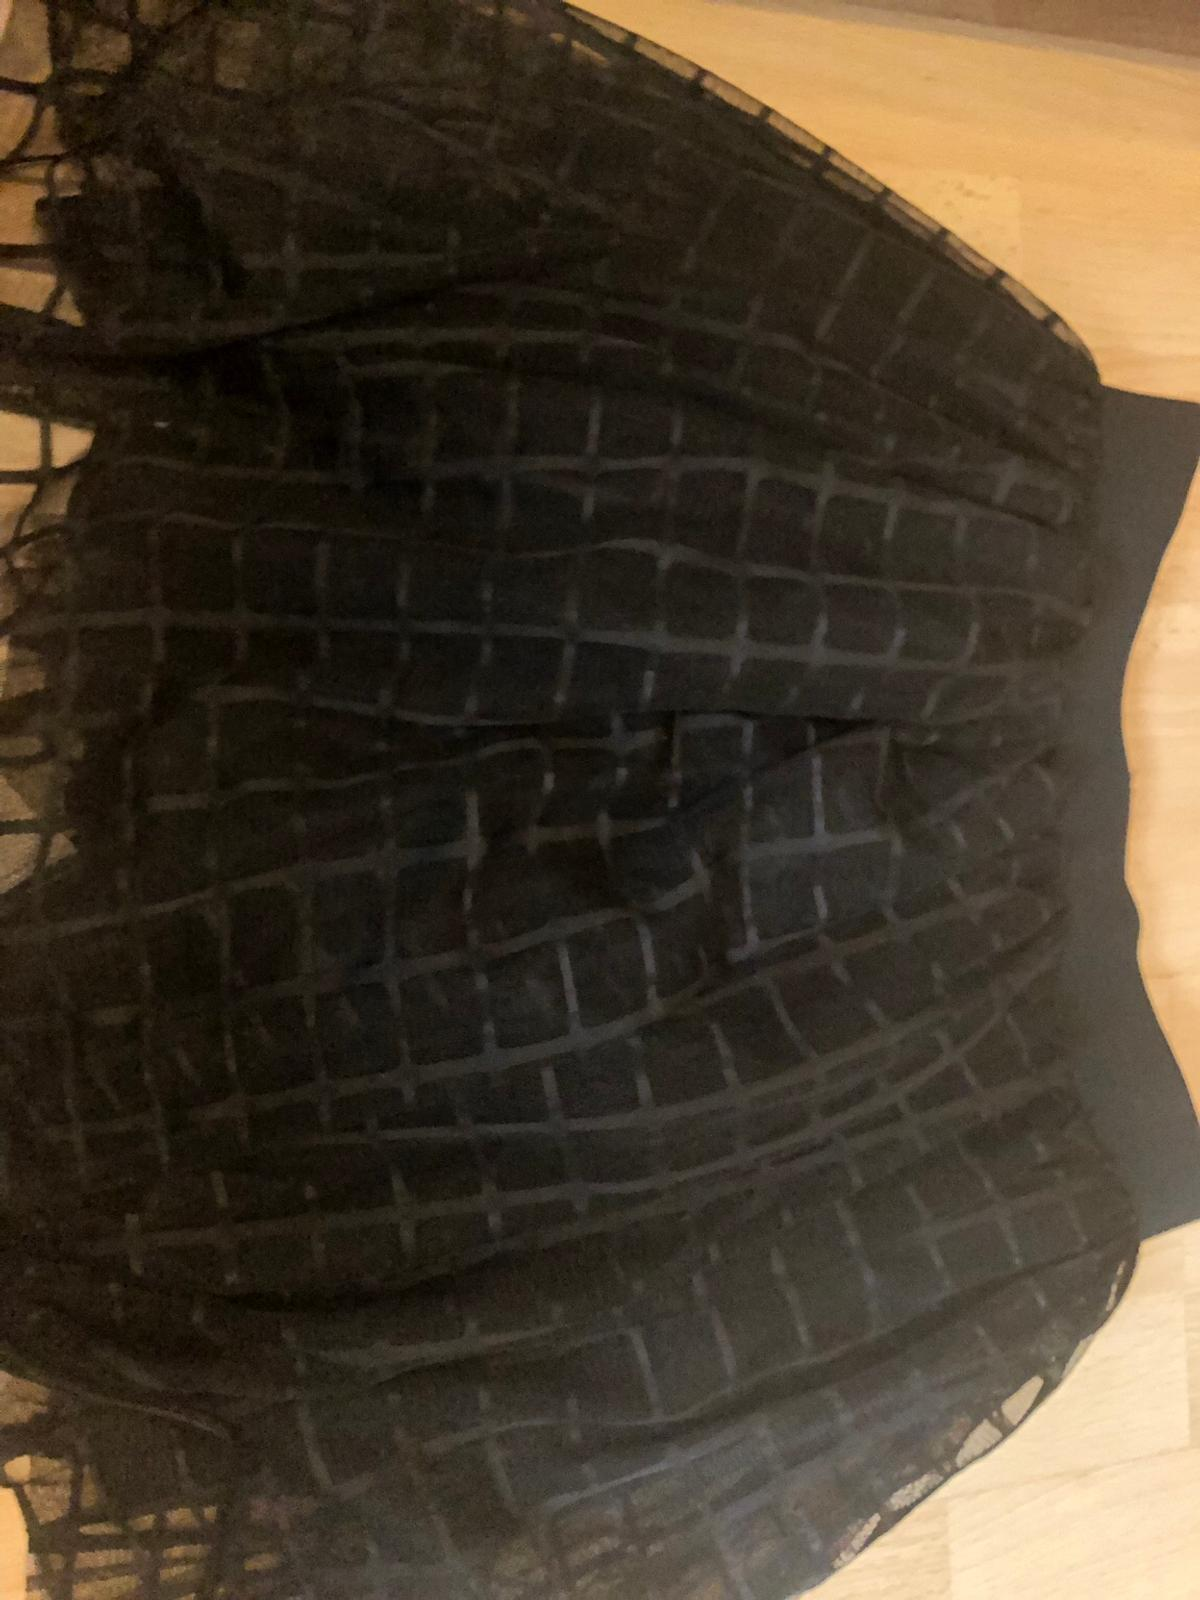 - UK size 12, Euro 40, US 8. - Puffy boohoo skirt - Never been worn - Delivery not included